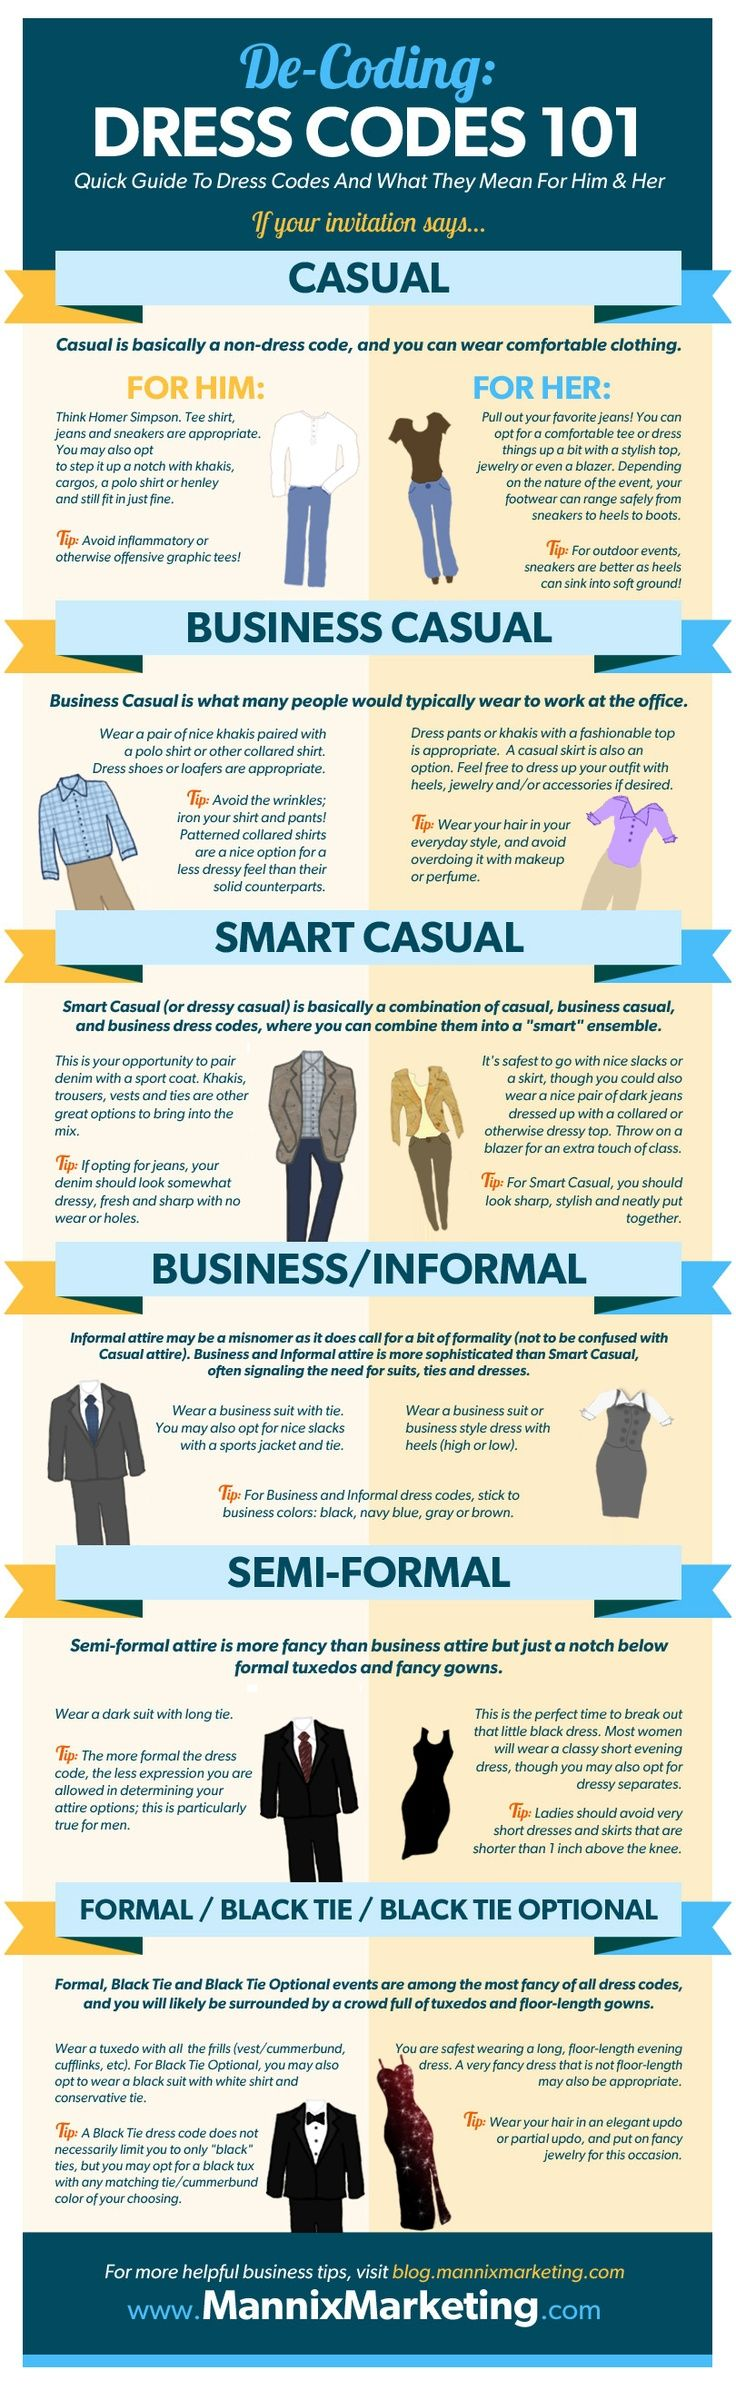 Dress code 10 ever get nervous about what to wear when someones de coding dress codes 101 quick guide to dress codes and what they mean for him and her if your invitation says appropriate attire dress code stopboris Gallery